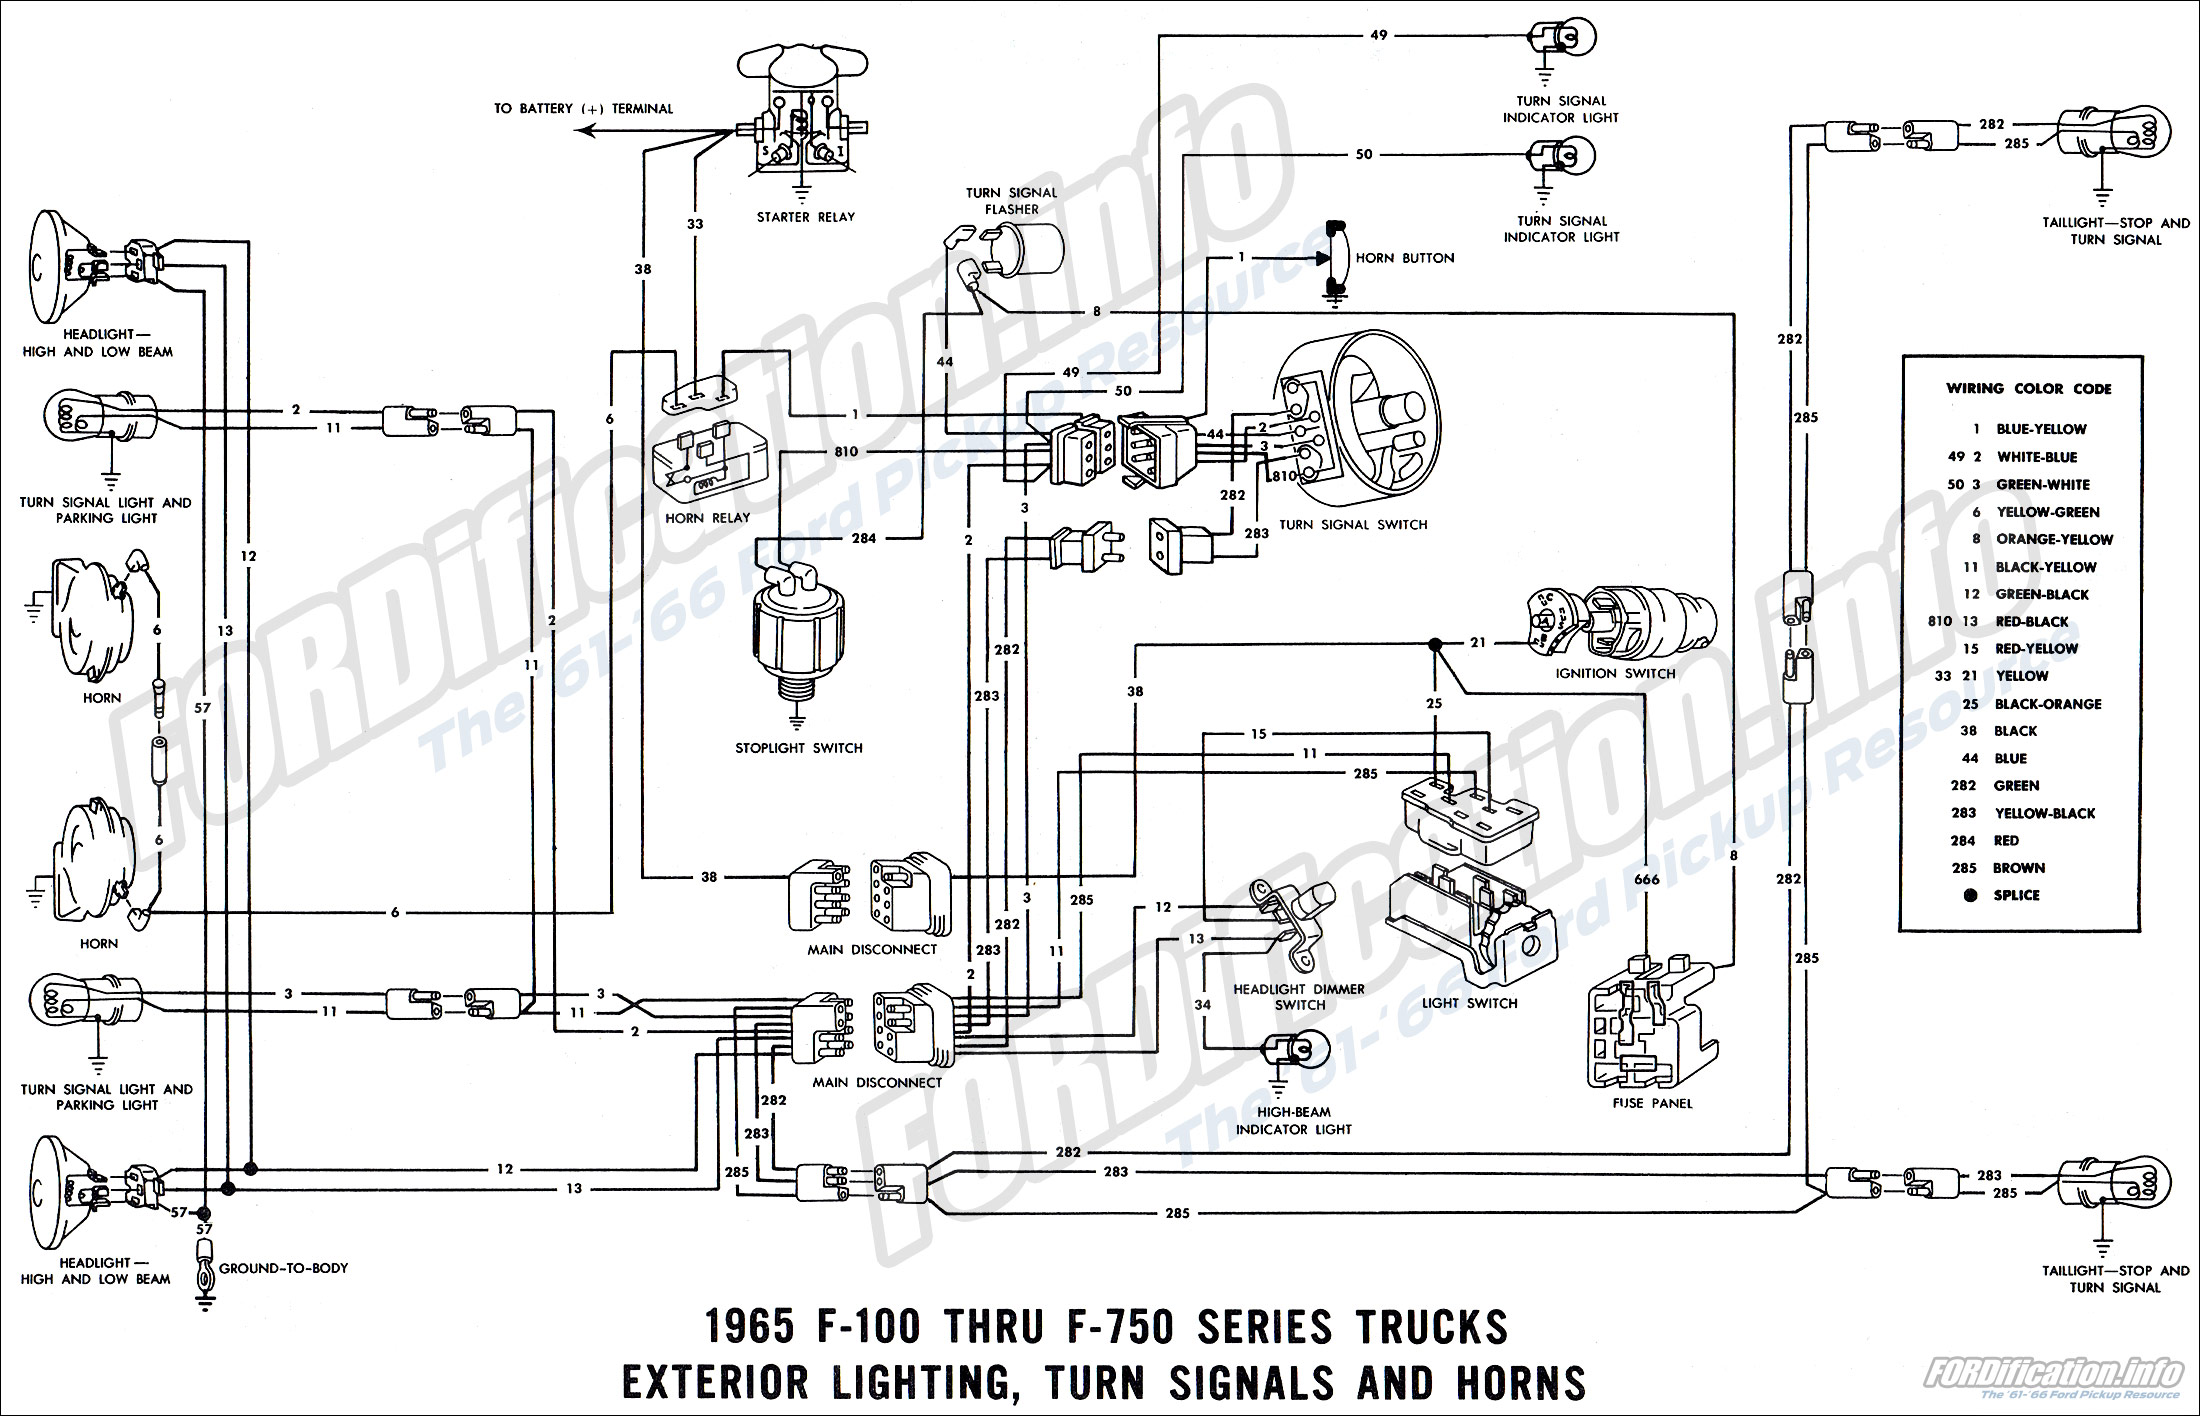 1965 Ford Truck Alternator Wiring Diagram Real Volvo Penta Diagrams Fordification Info The 67 1988